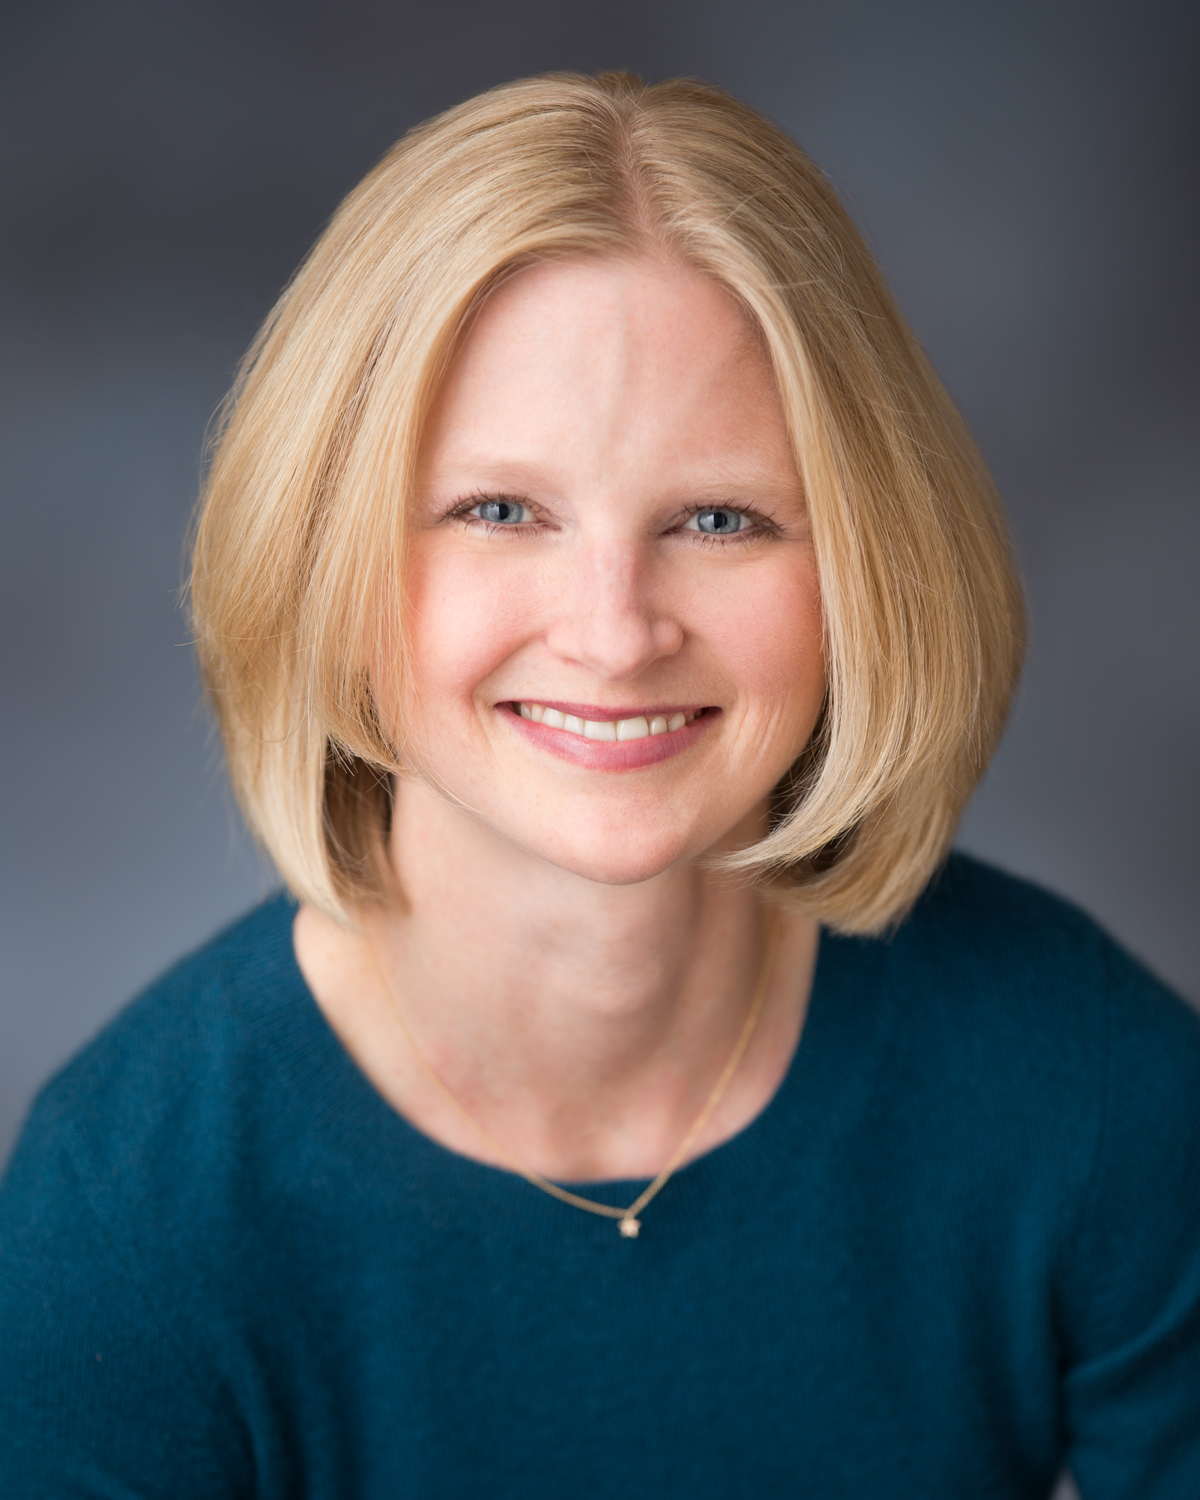 Lisa L. Diepenhorst, MD - Physician and Surgeon, Obstetrics and Gynecology, Portland, OR